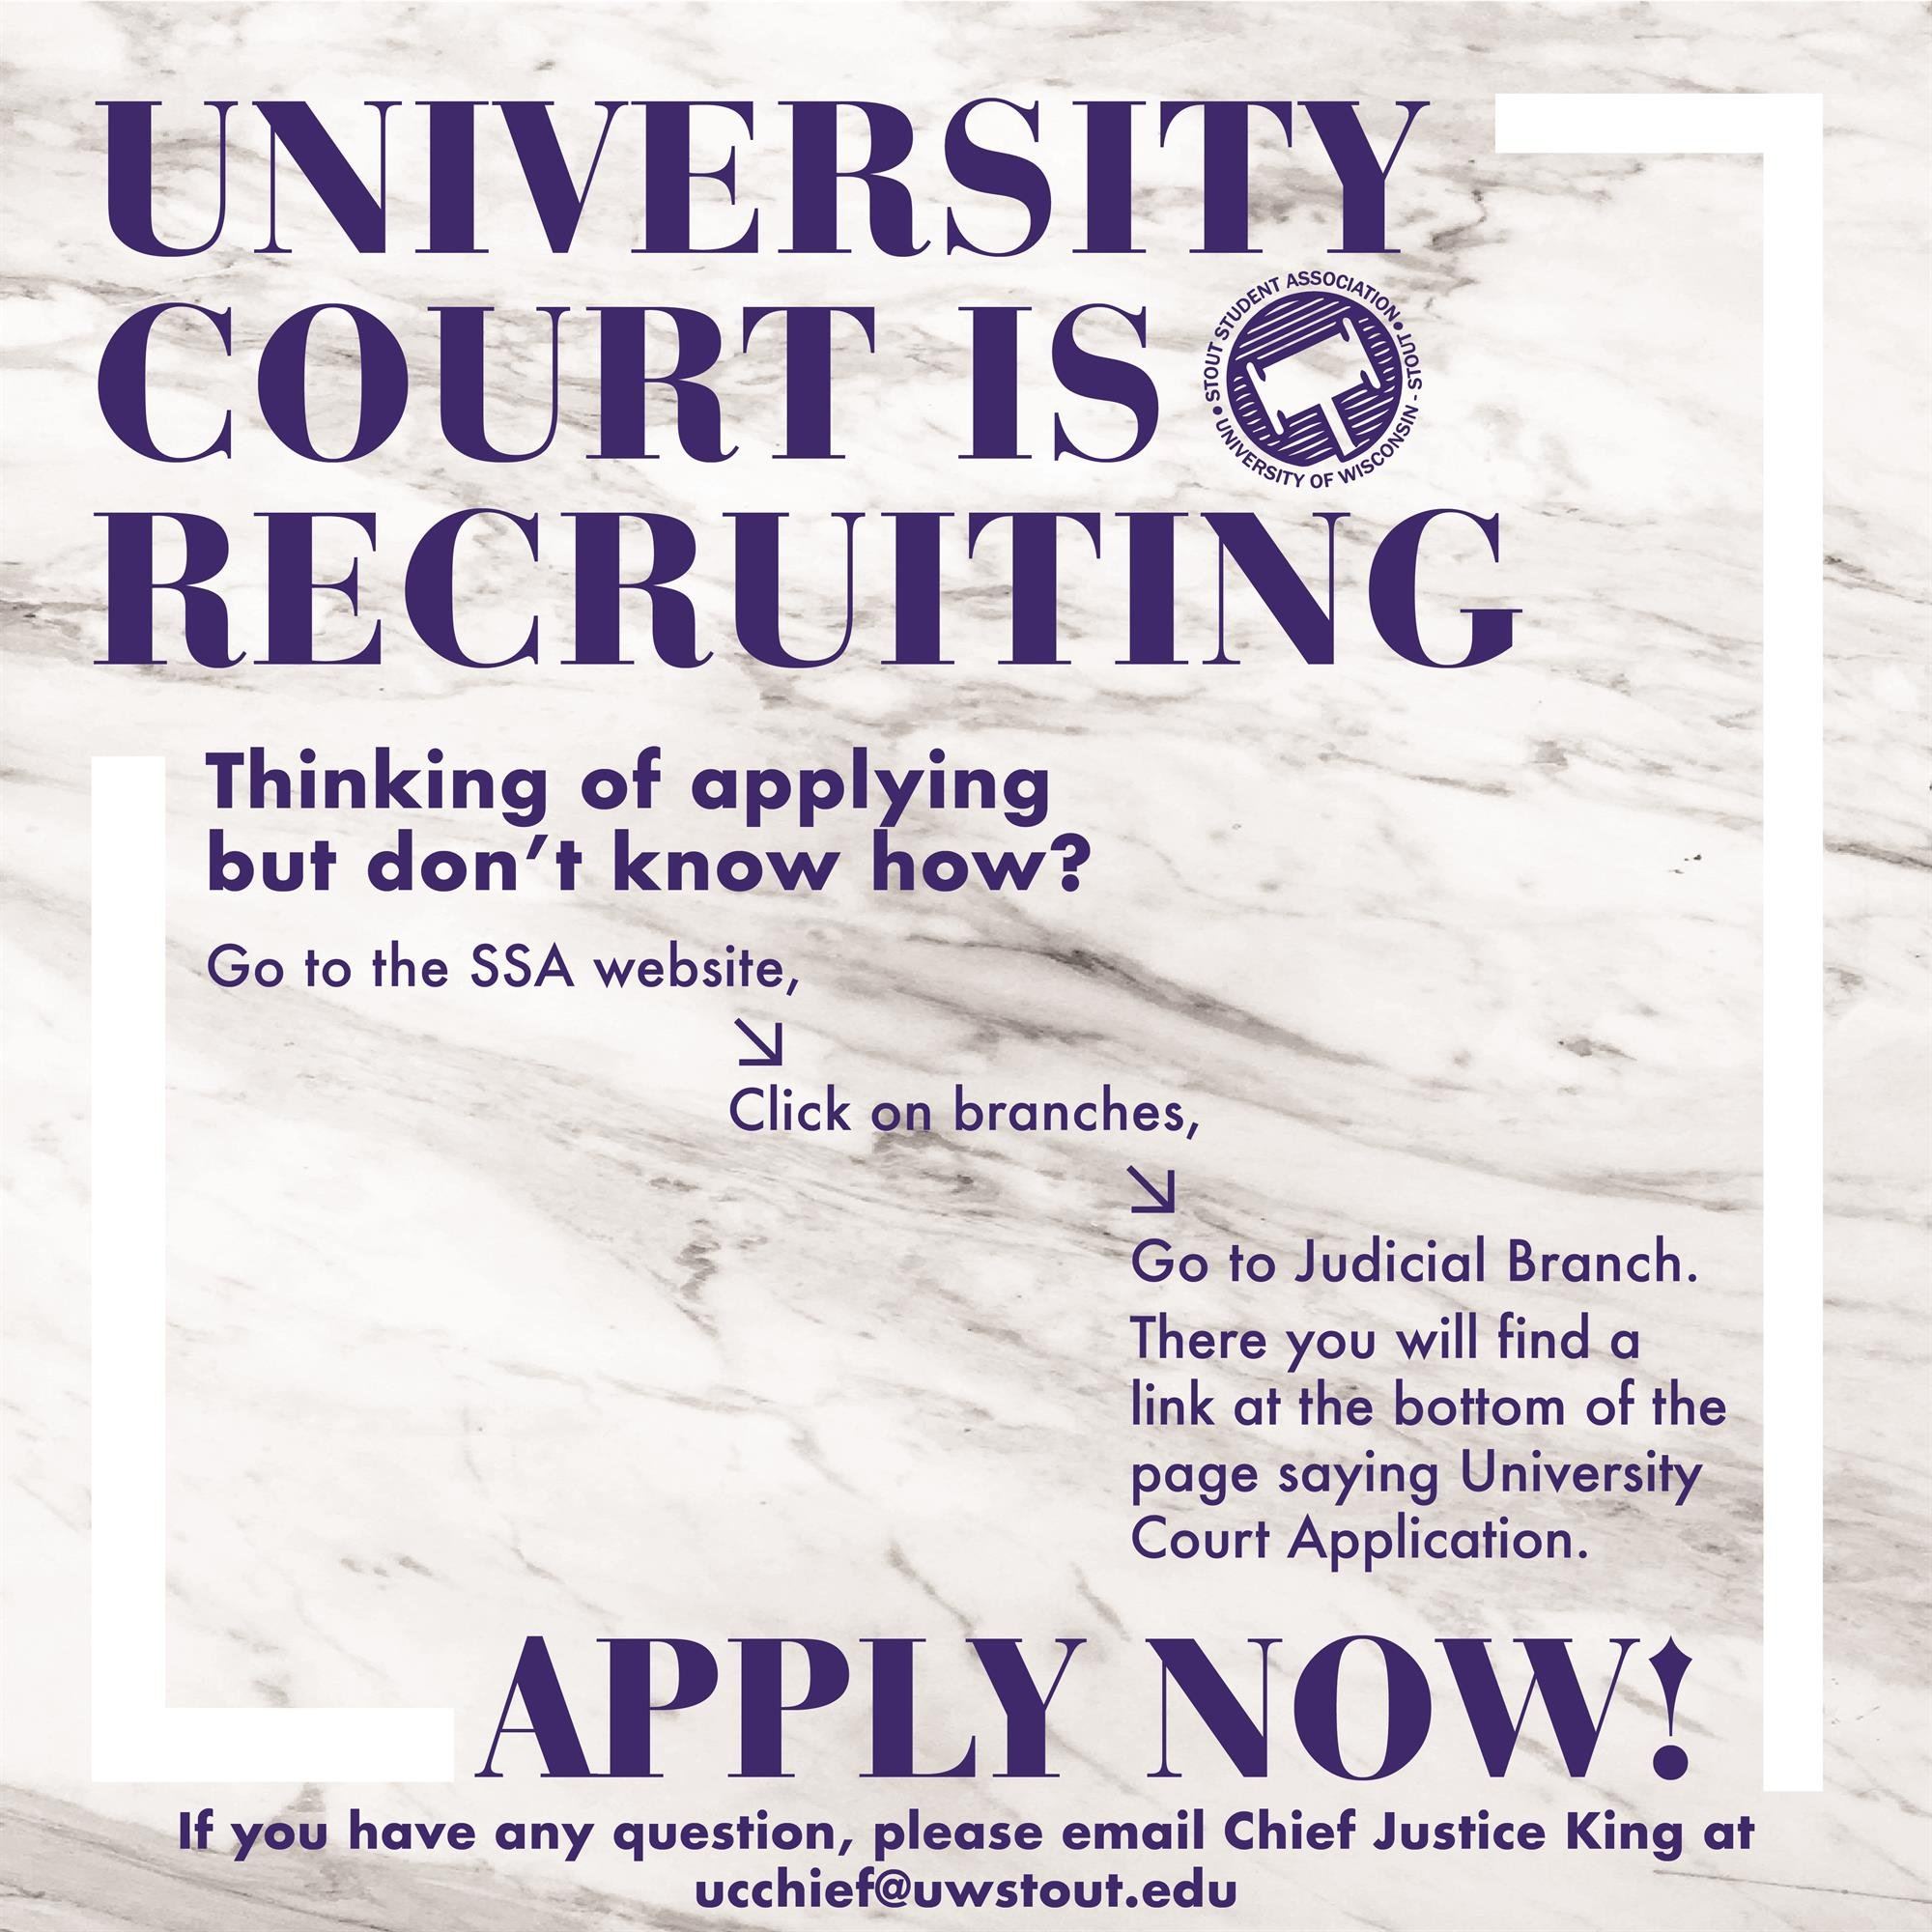 University Court is Recruiting